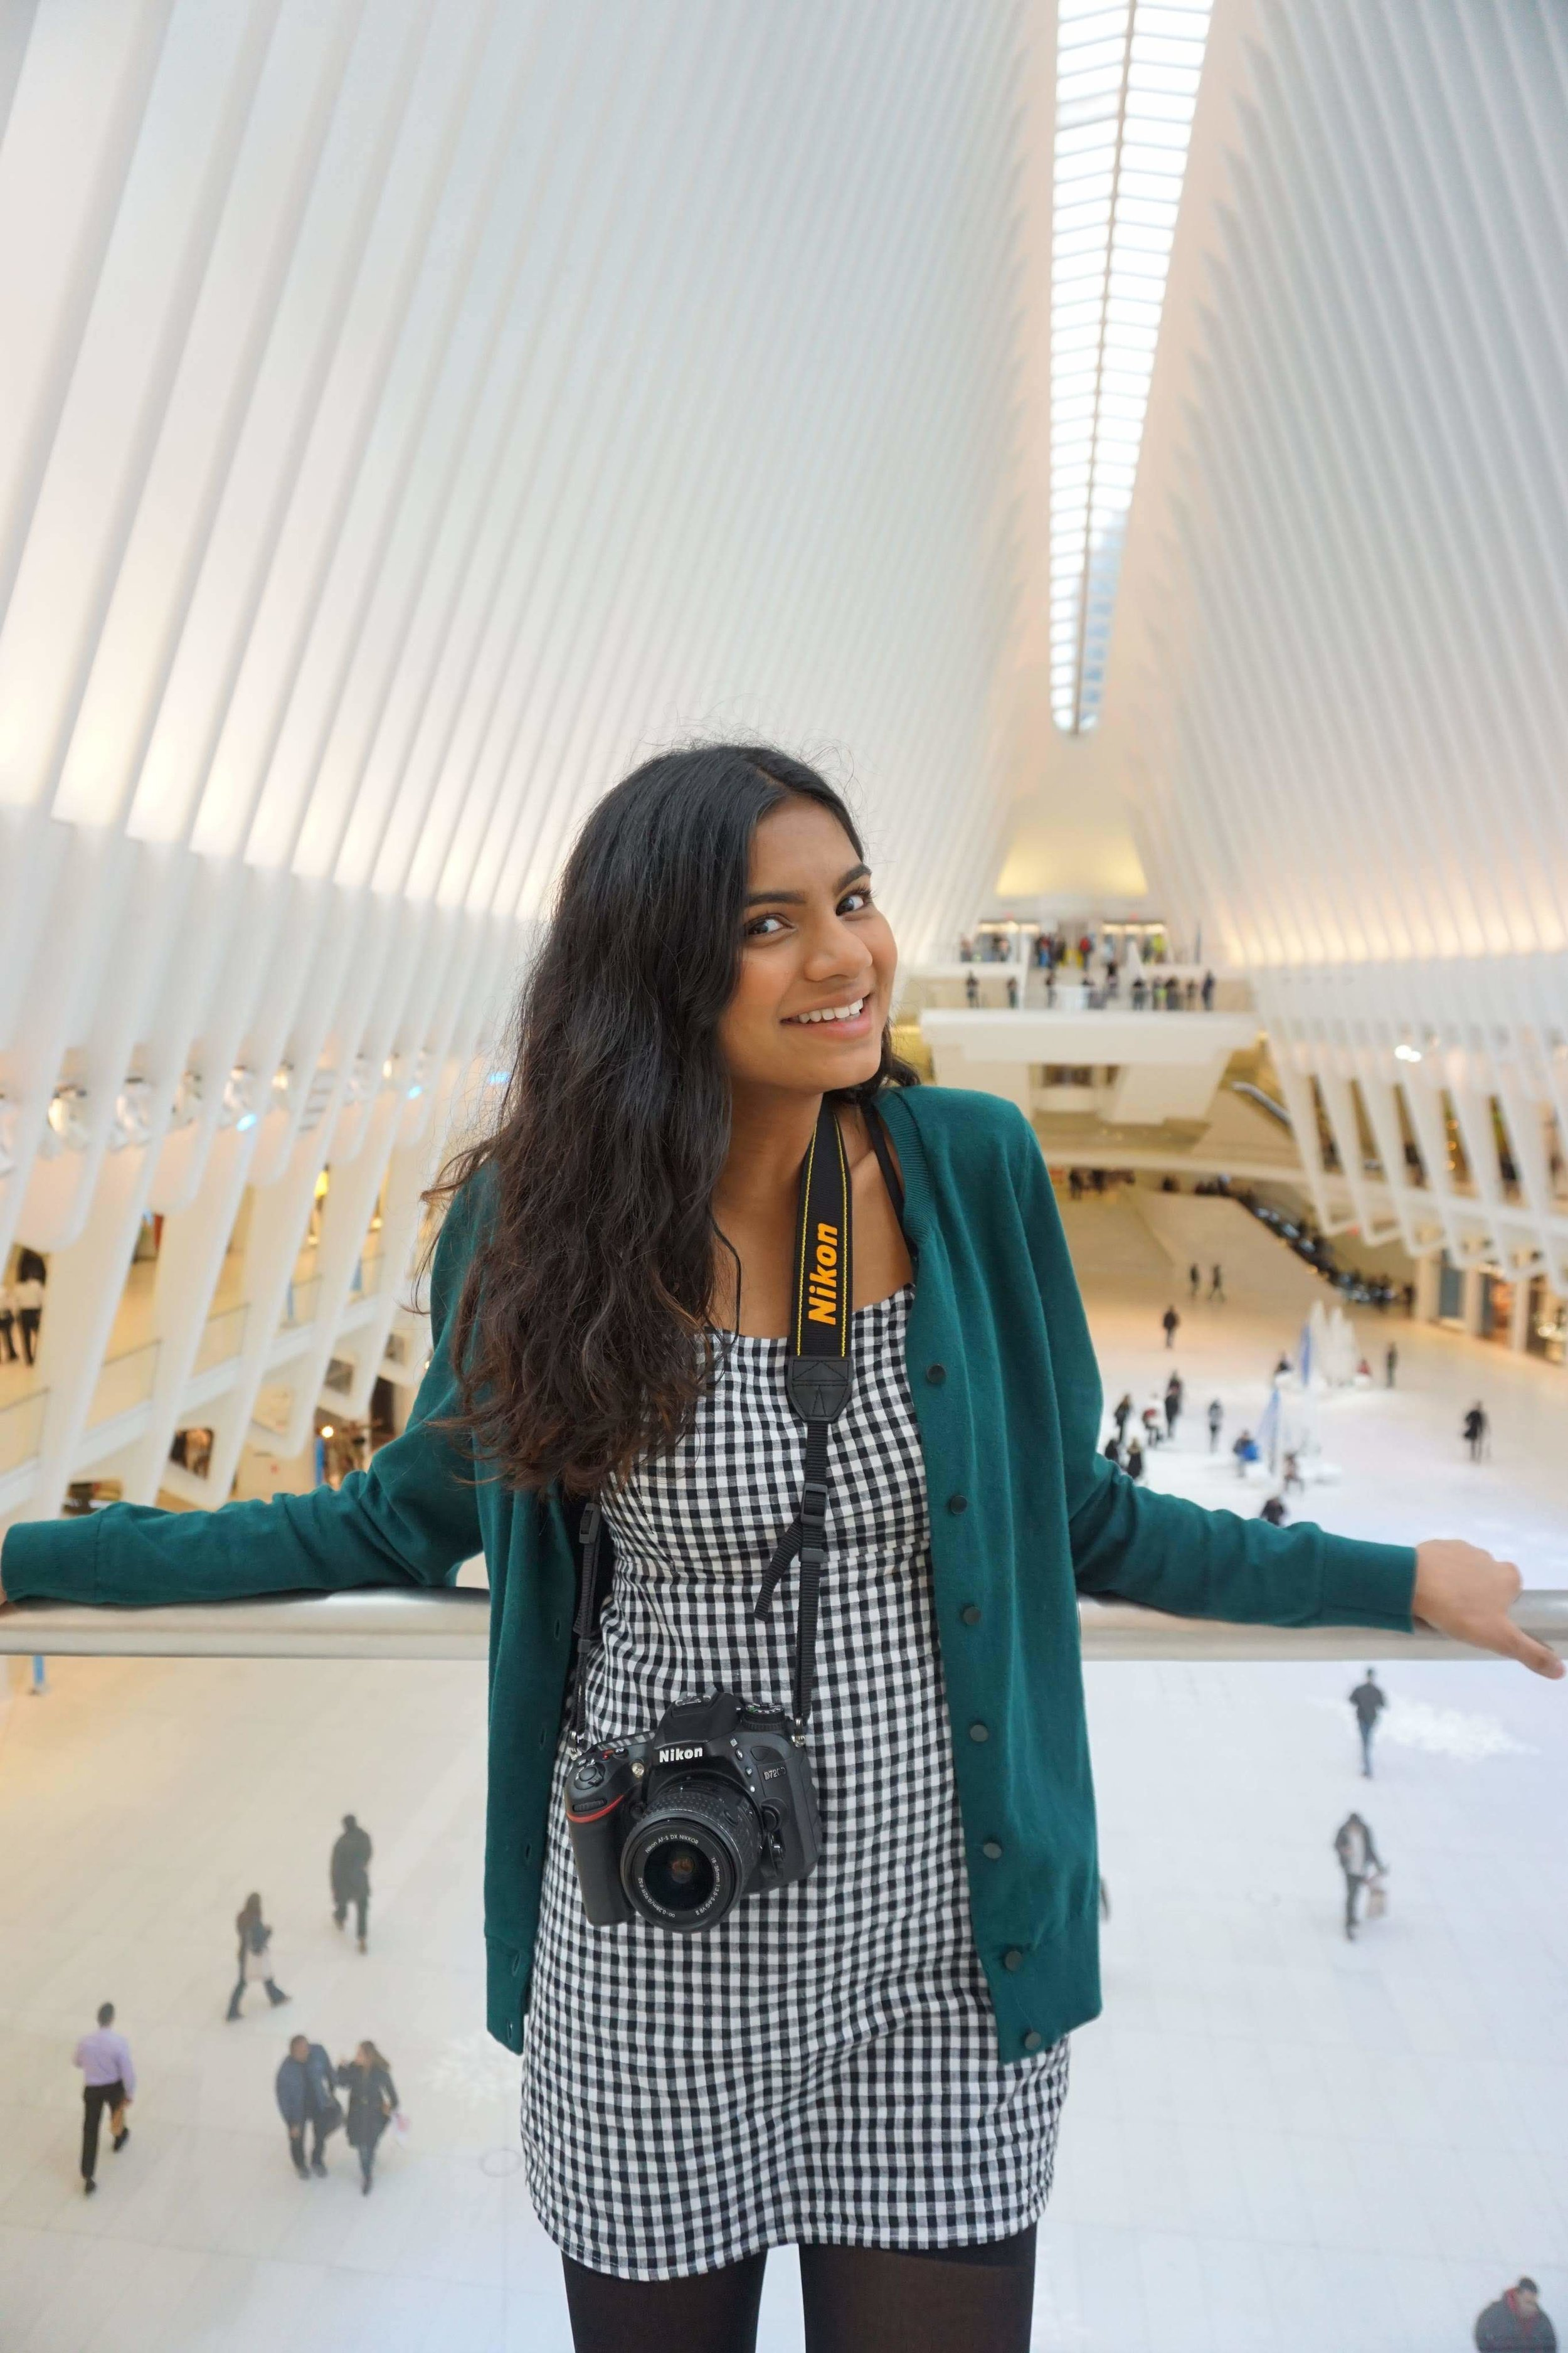 Manjari Sriparna '19   Manjari is a senior from Northern Virginia. On campus, she is a science olympiad mentor to middle schoolers, volunteer for Hopkins' Adult Emergency, PILOT leader, and is currently researching Parkinson's disease. Manjari loves photography and once accidentally captured a picture of a couple getting married! Her go to spot on campus is Mudd Atrium.